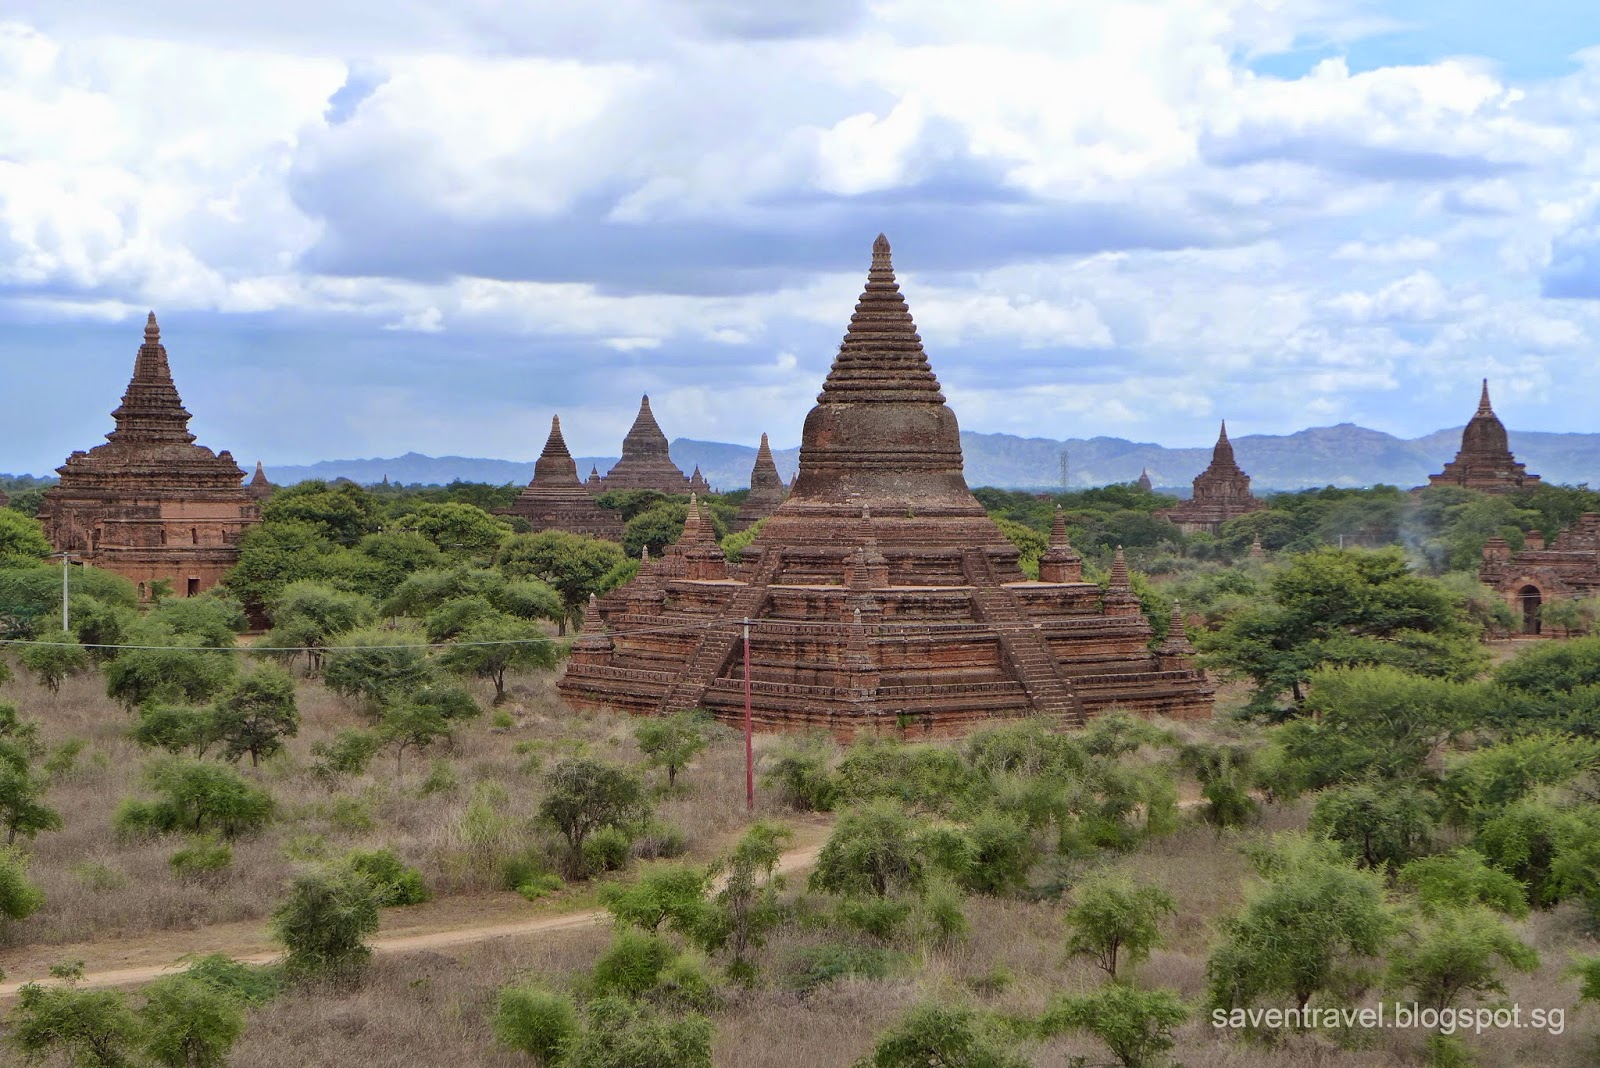 Save & Travel: Temple Run in the Ancient City of Bagan